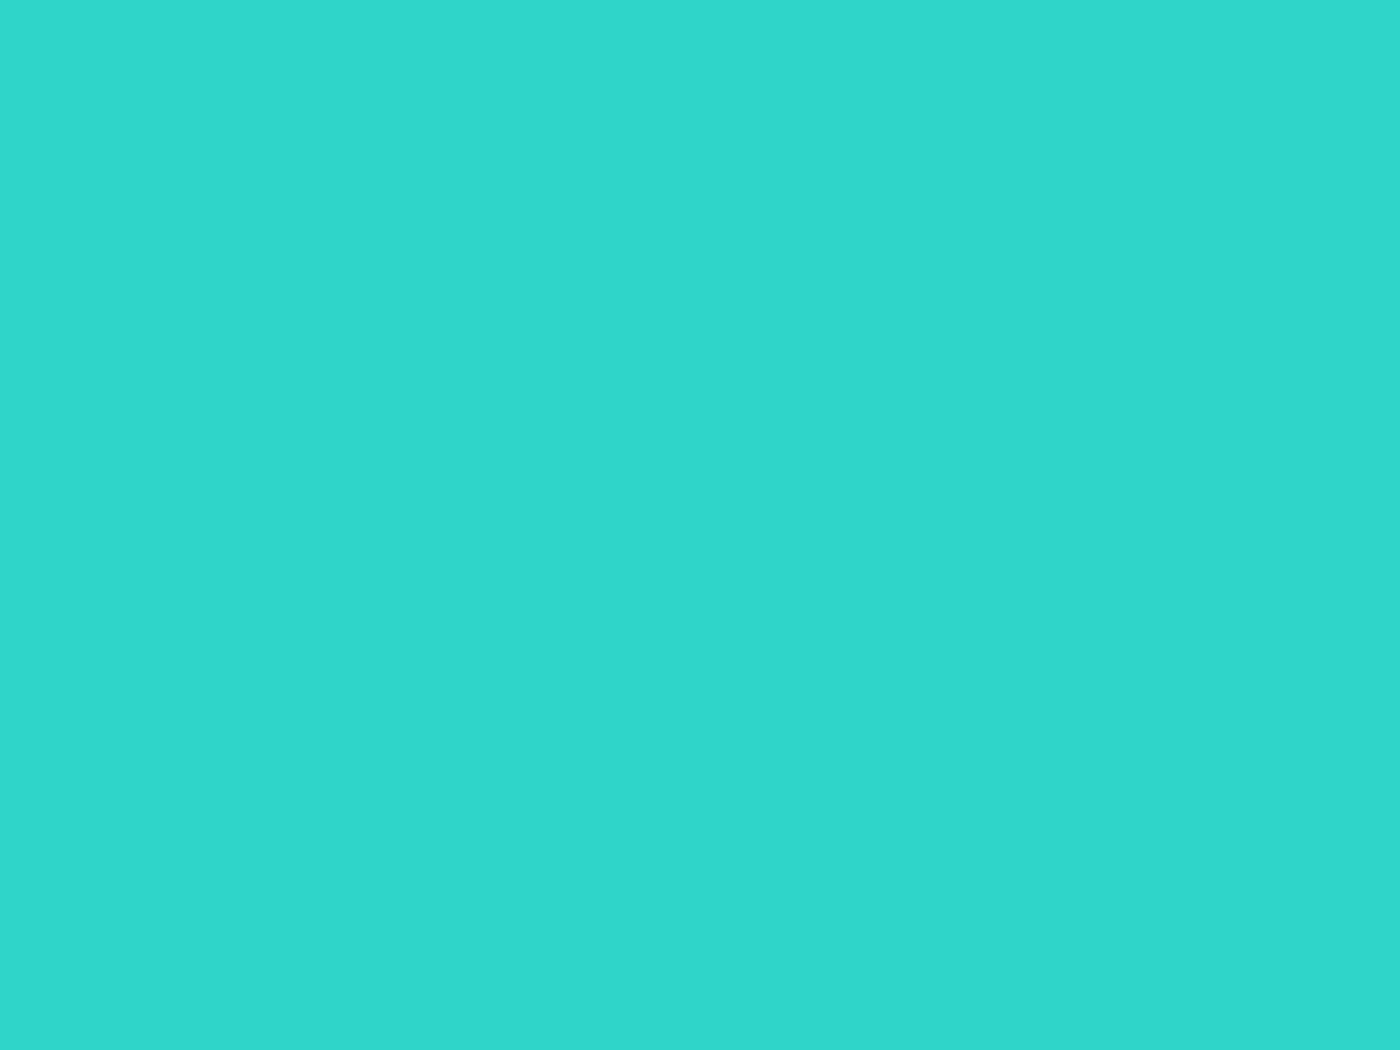 1400x1050 Turquoise Solid Color Background